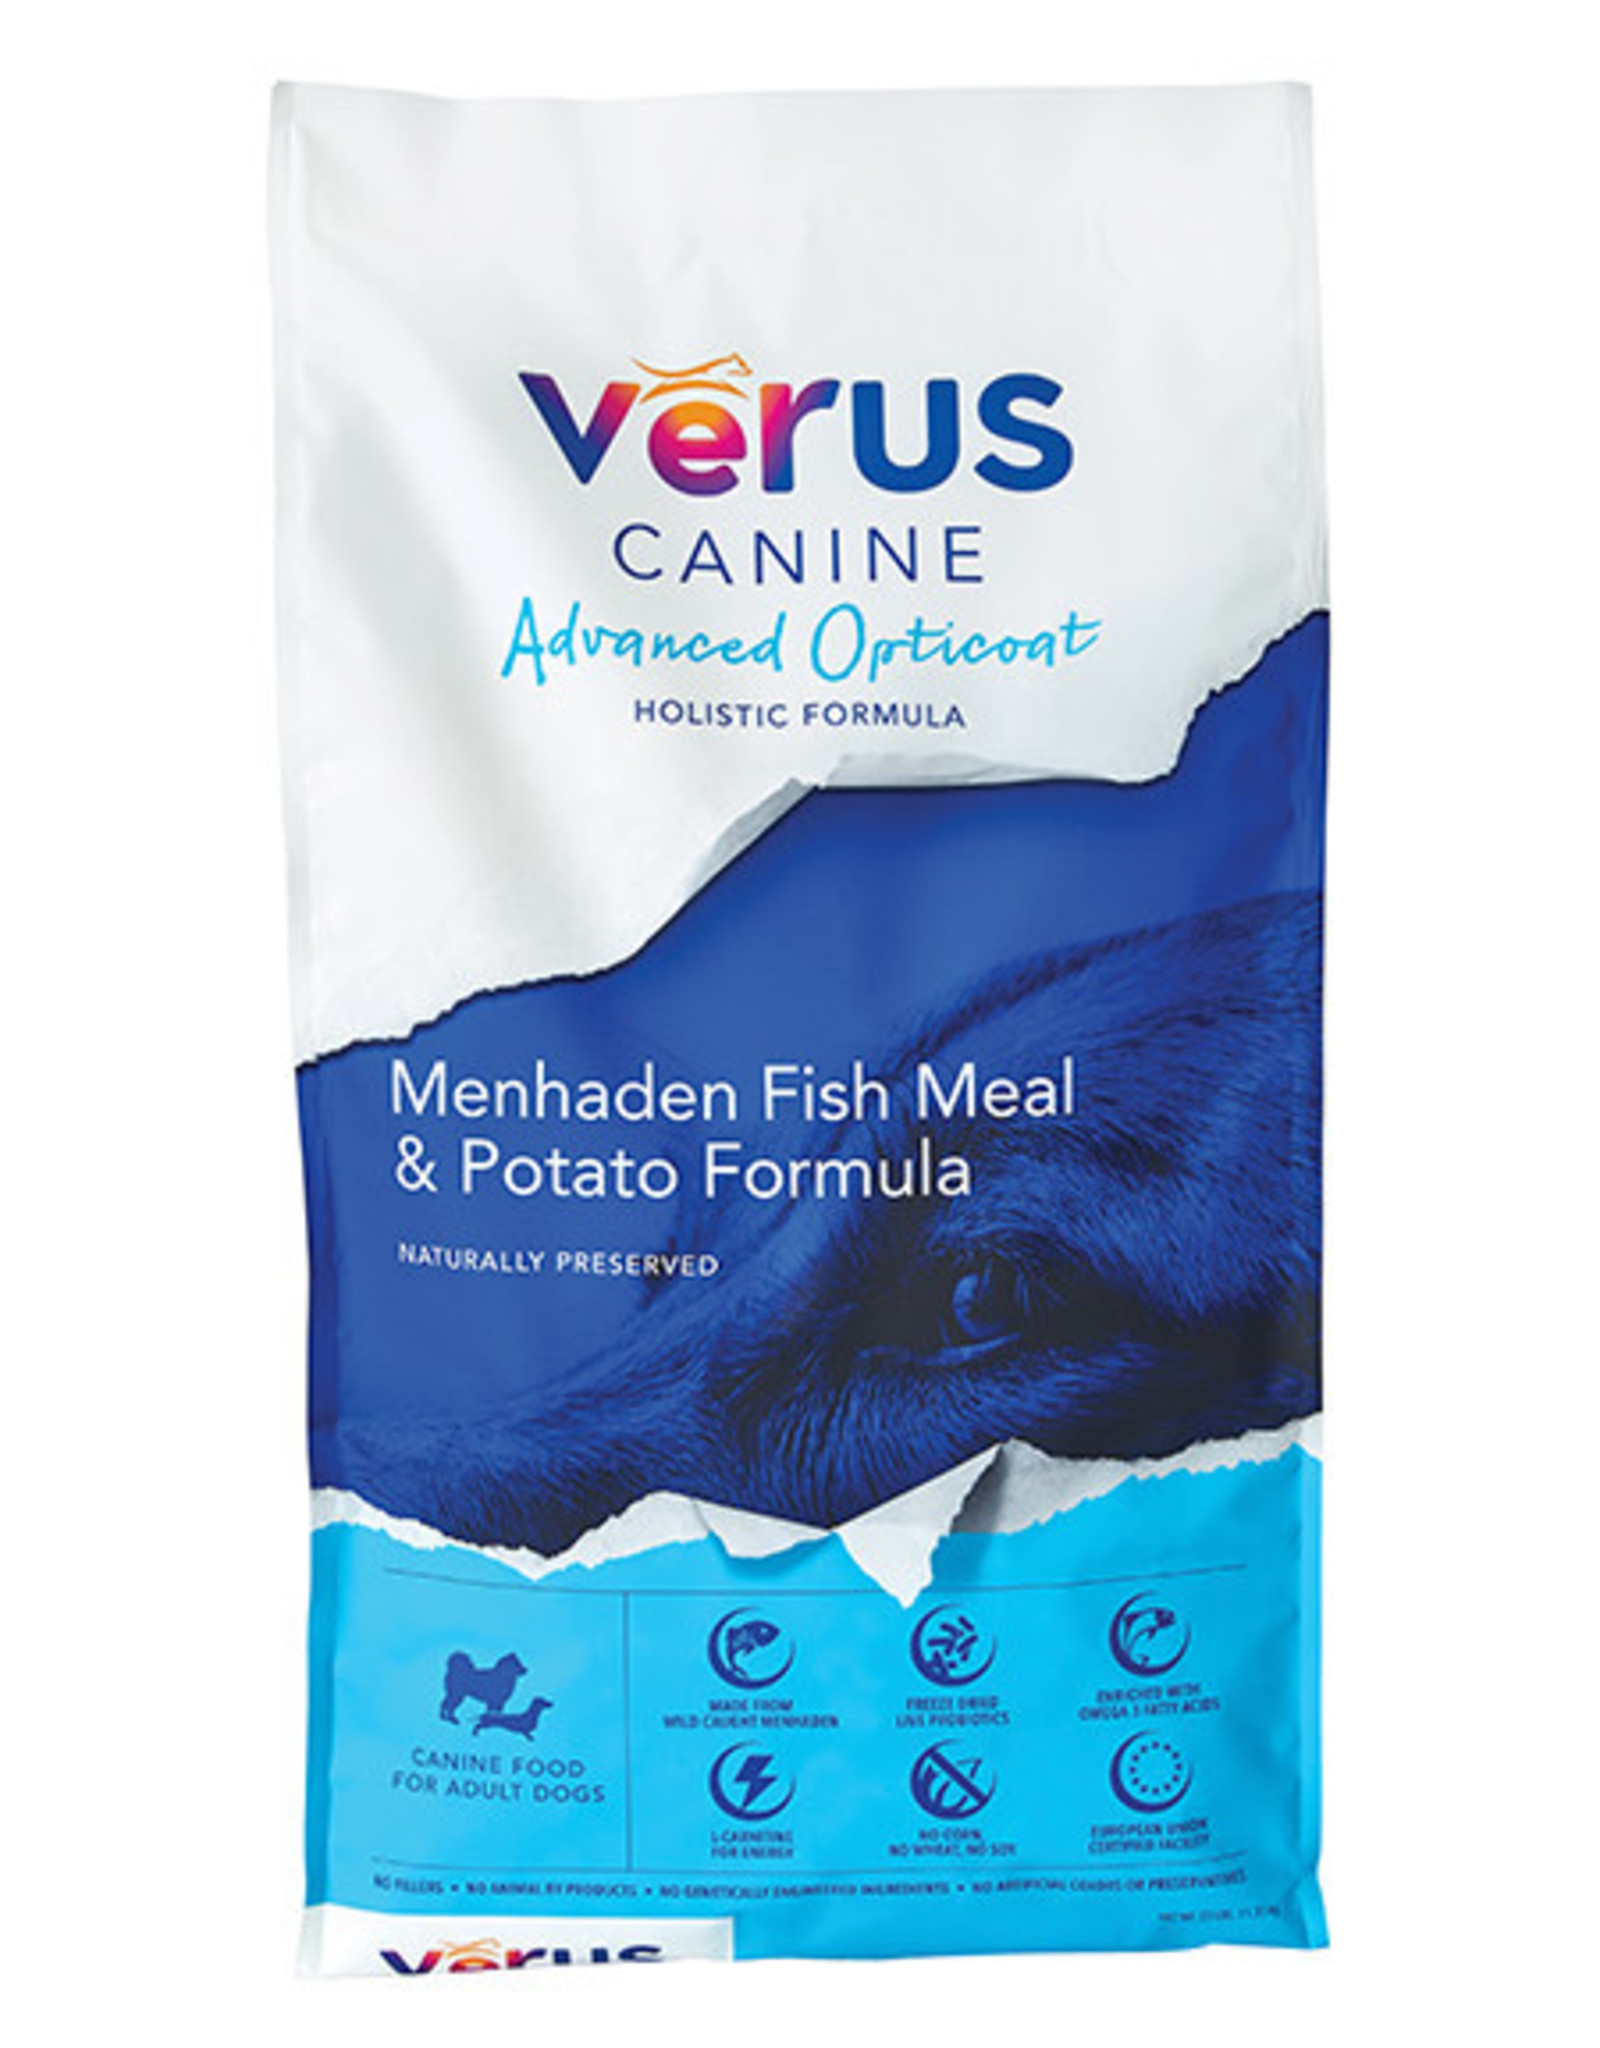 VeRUS VeRUS Advanced Opticoat Fish & Potato